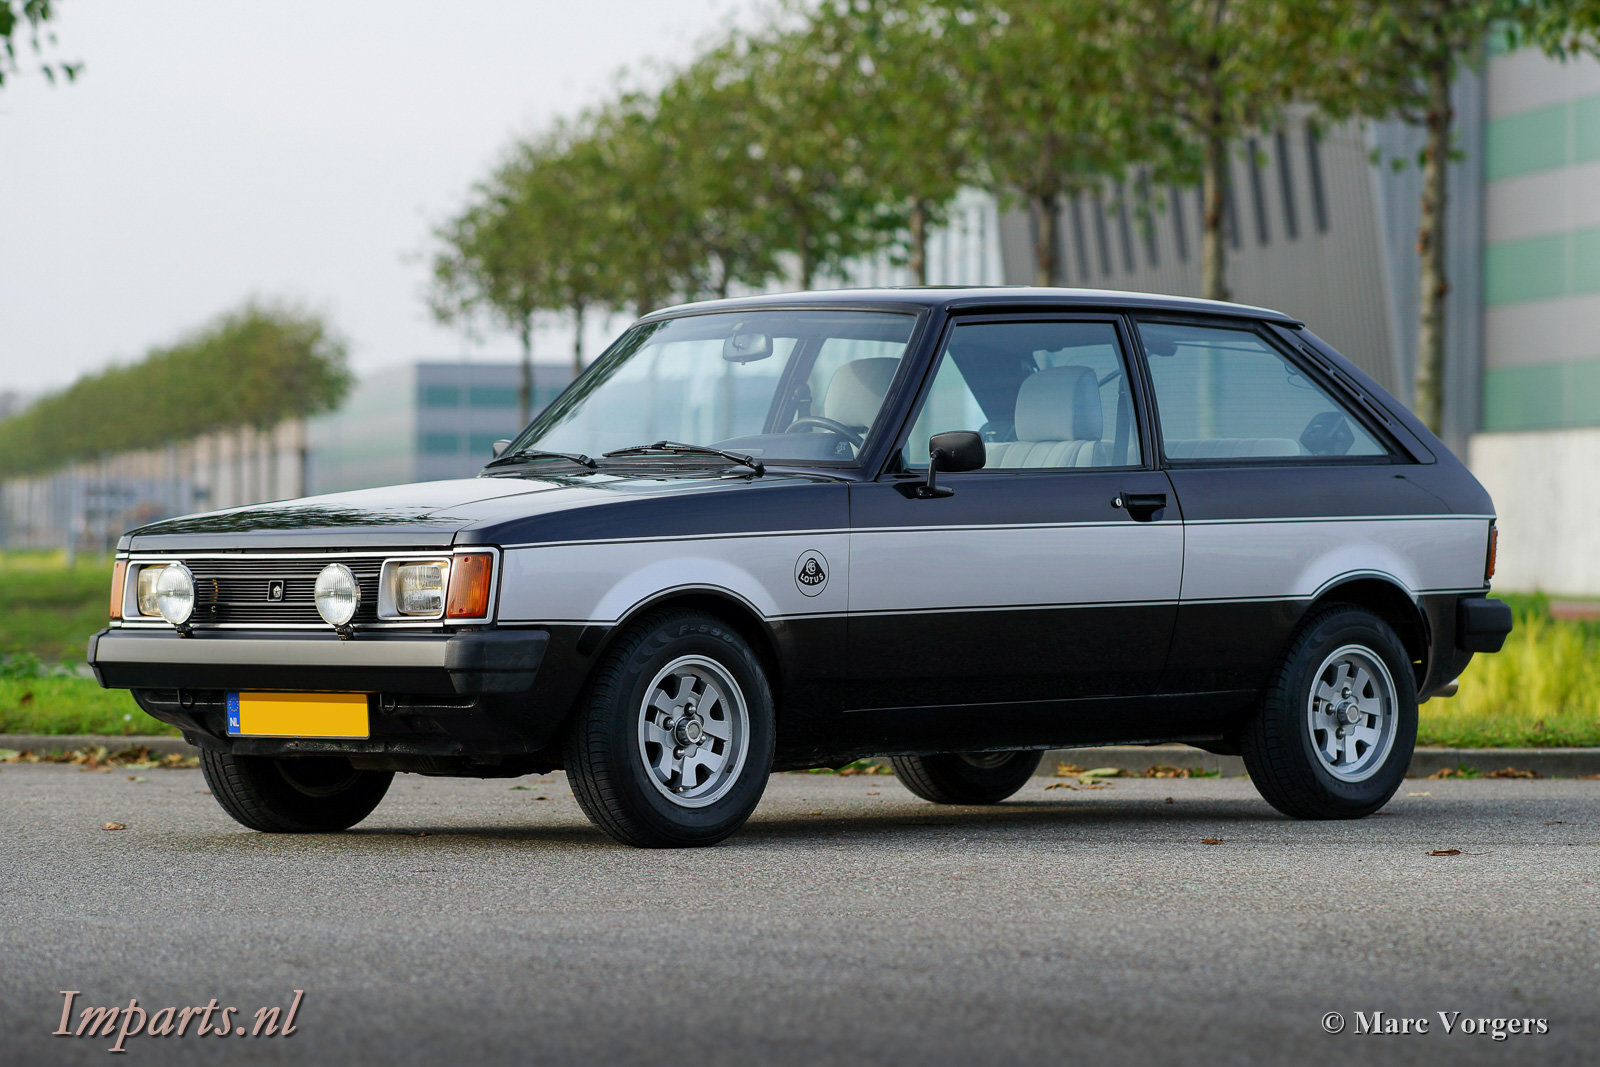 1980 Unique Talbot Sunbeam Lotus (LHD) For Sale (picture 1 of 6)